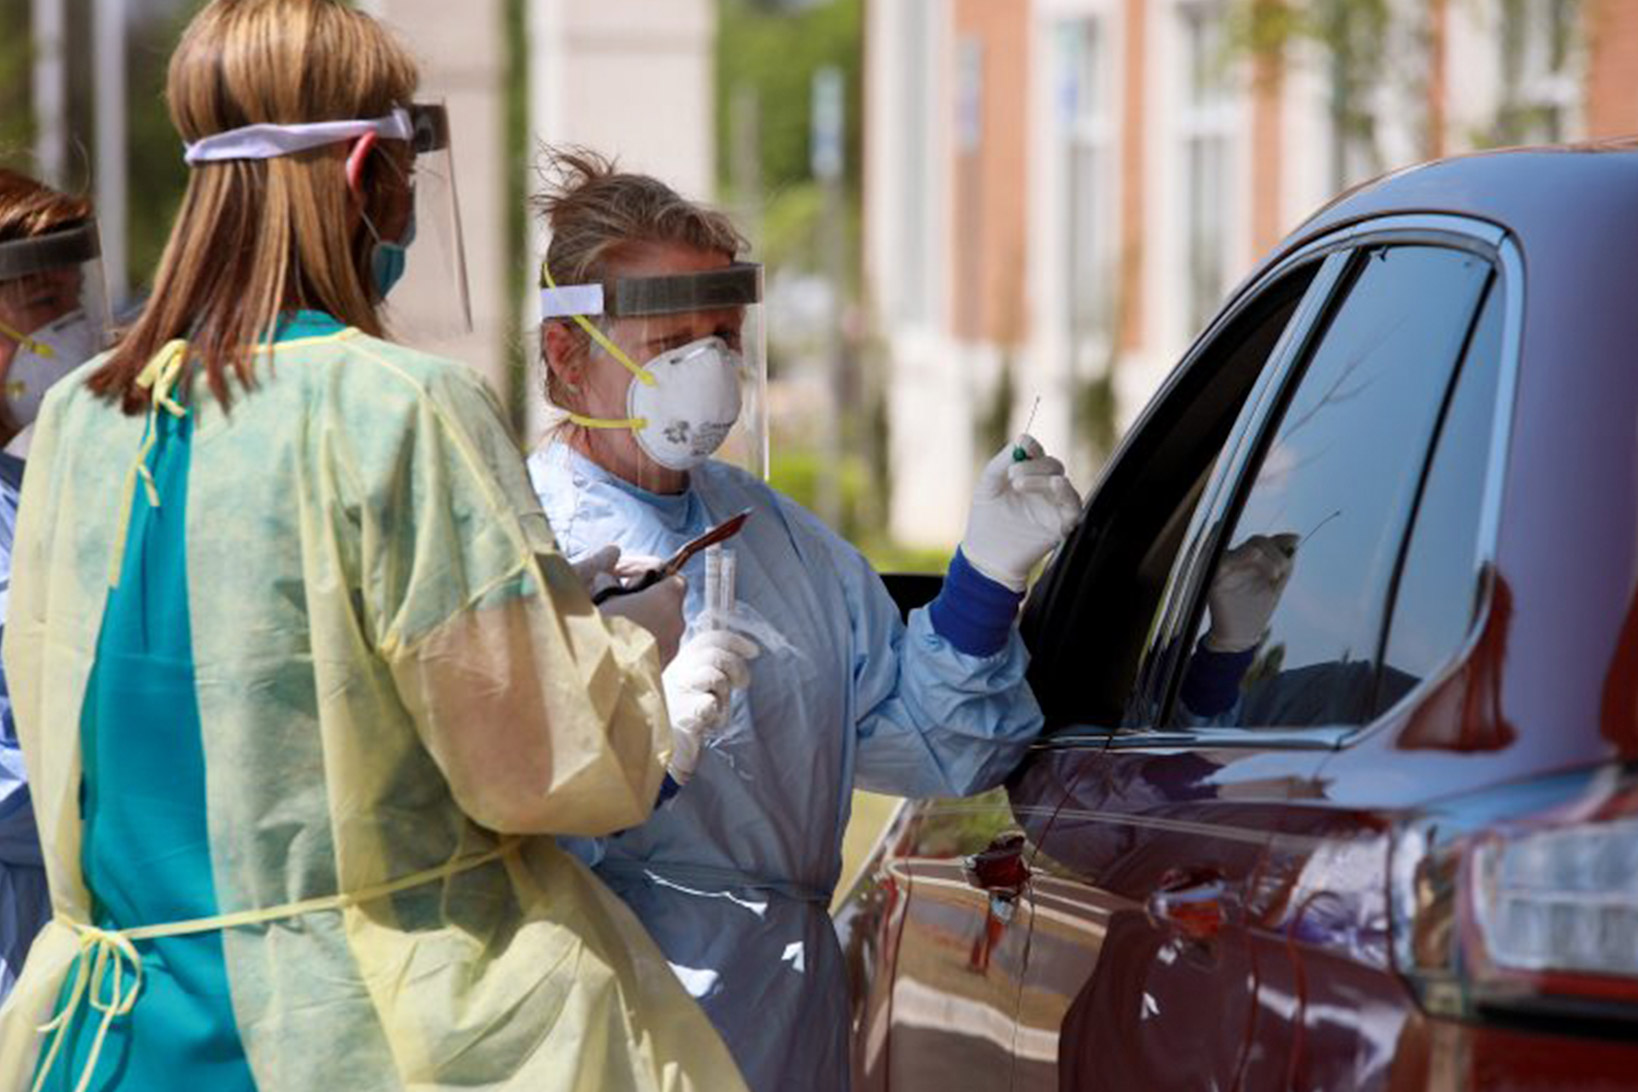 In a parking lot, two Lexington Medical clinicians hold a swab for COVID-19 testing for a patient in a red sedan.